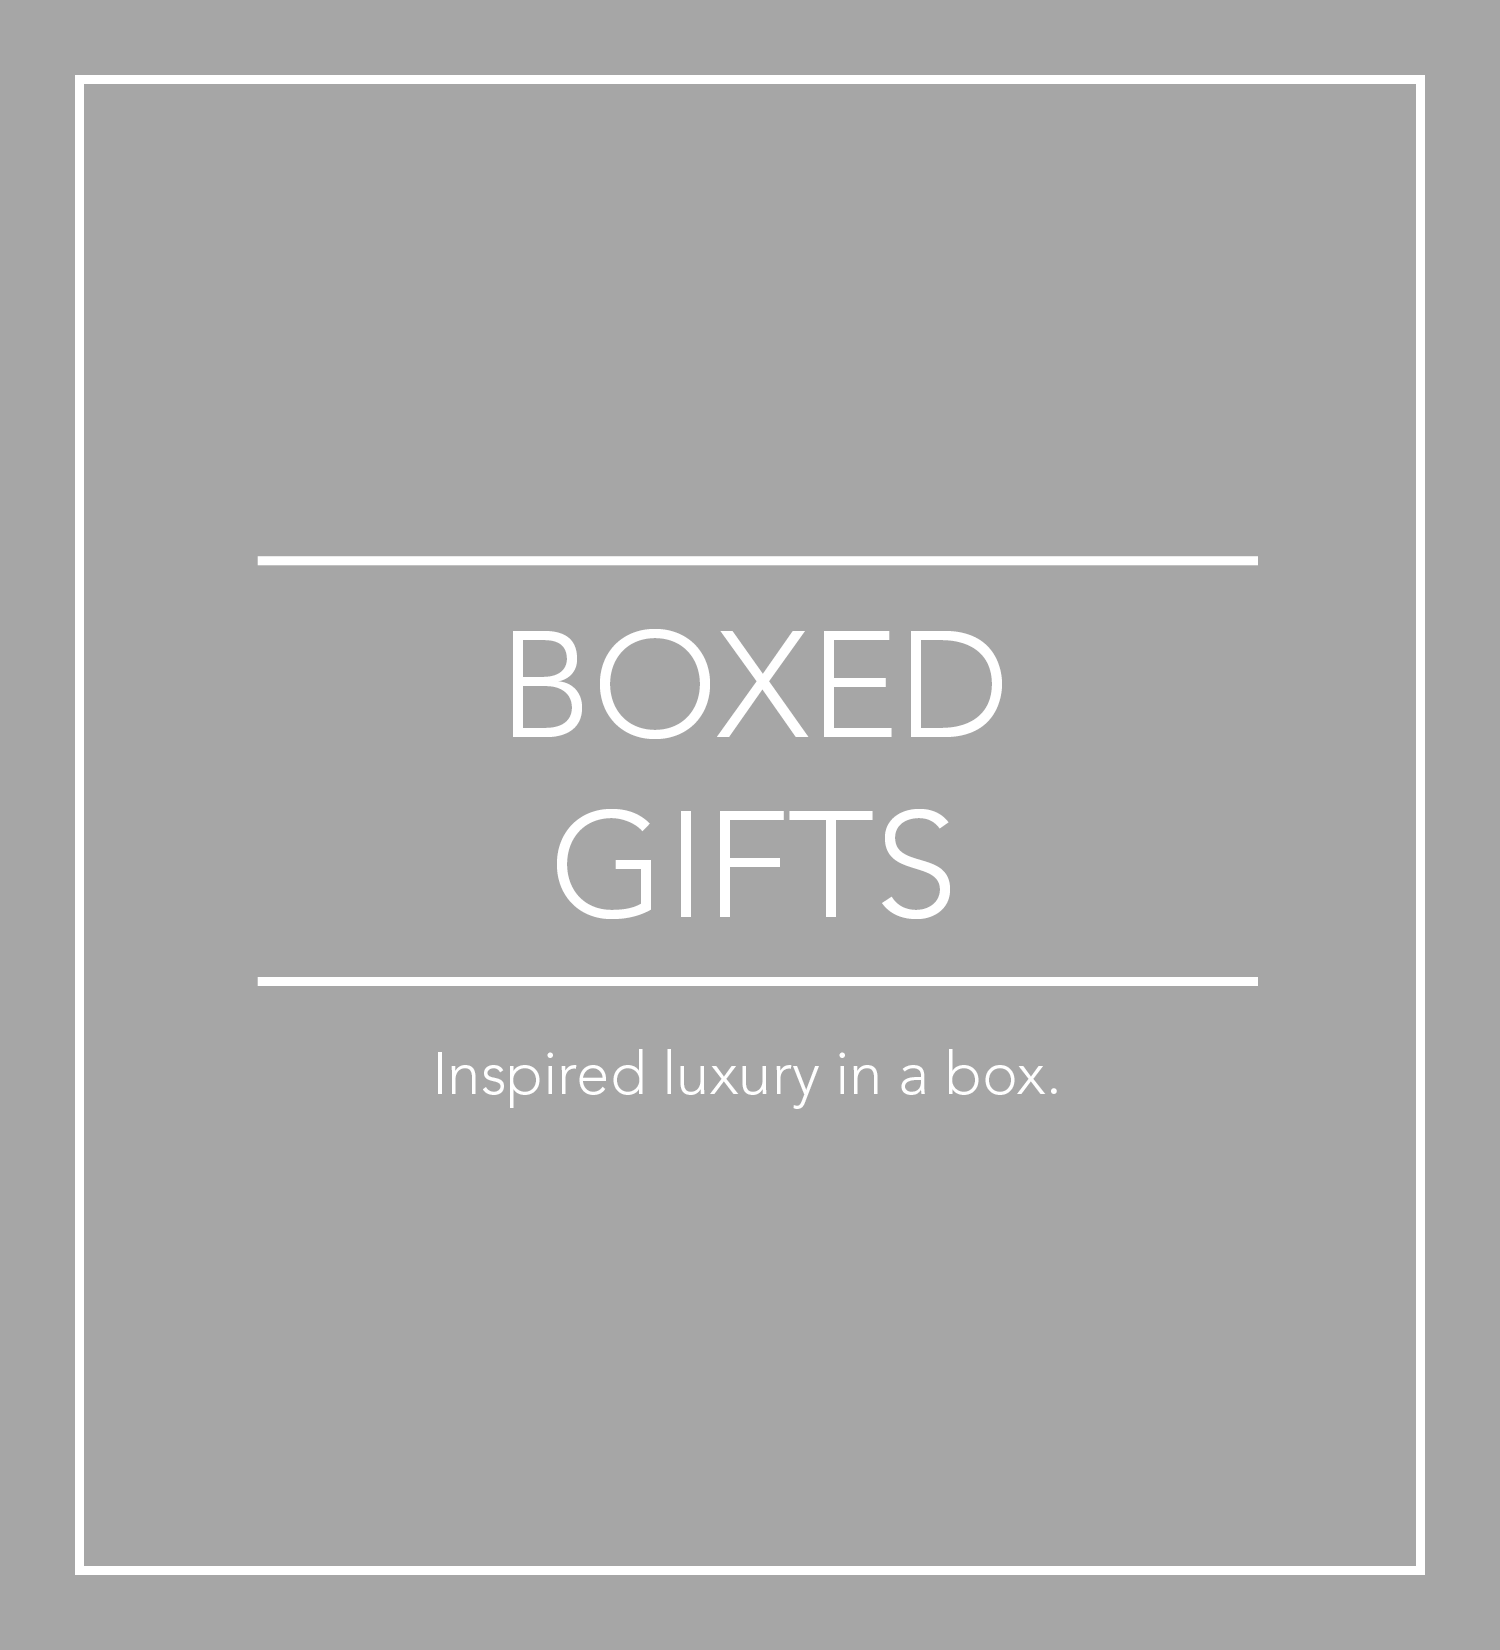 Boxed Gifts